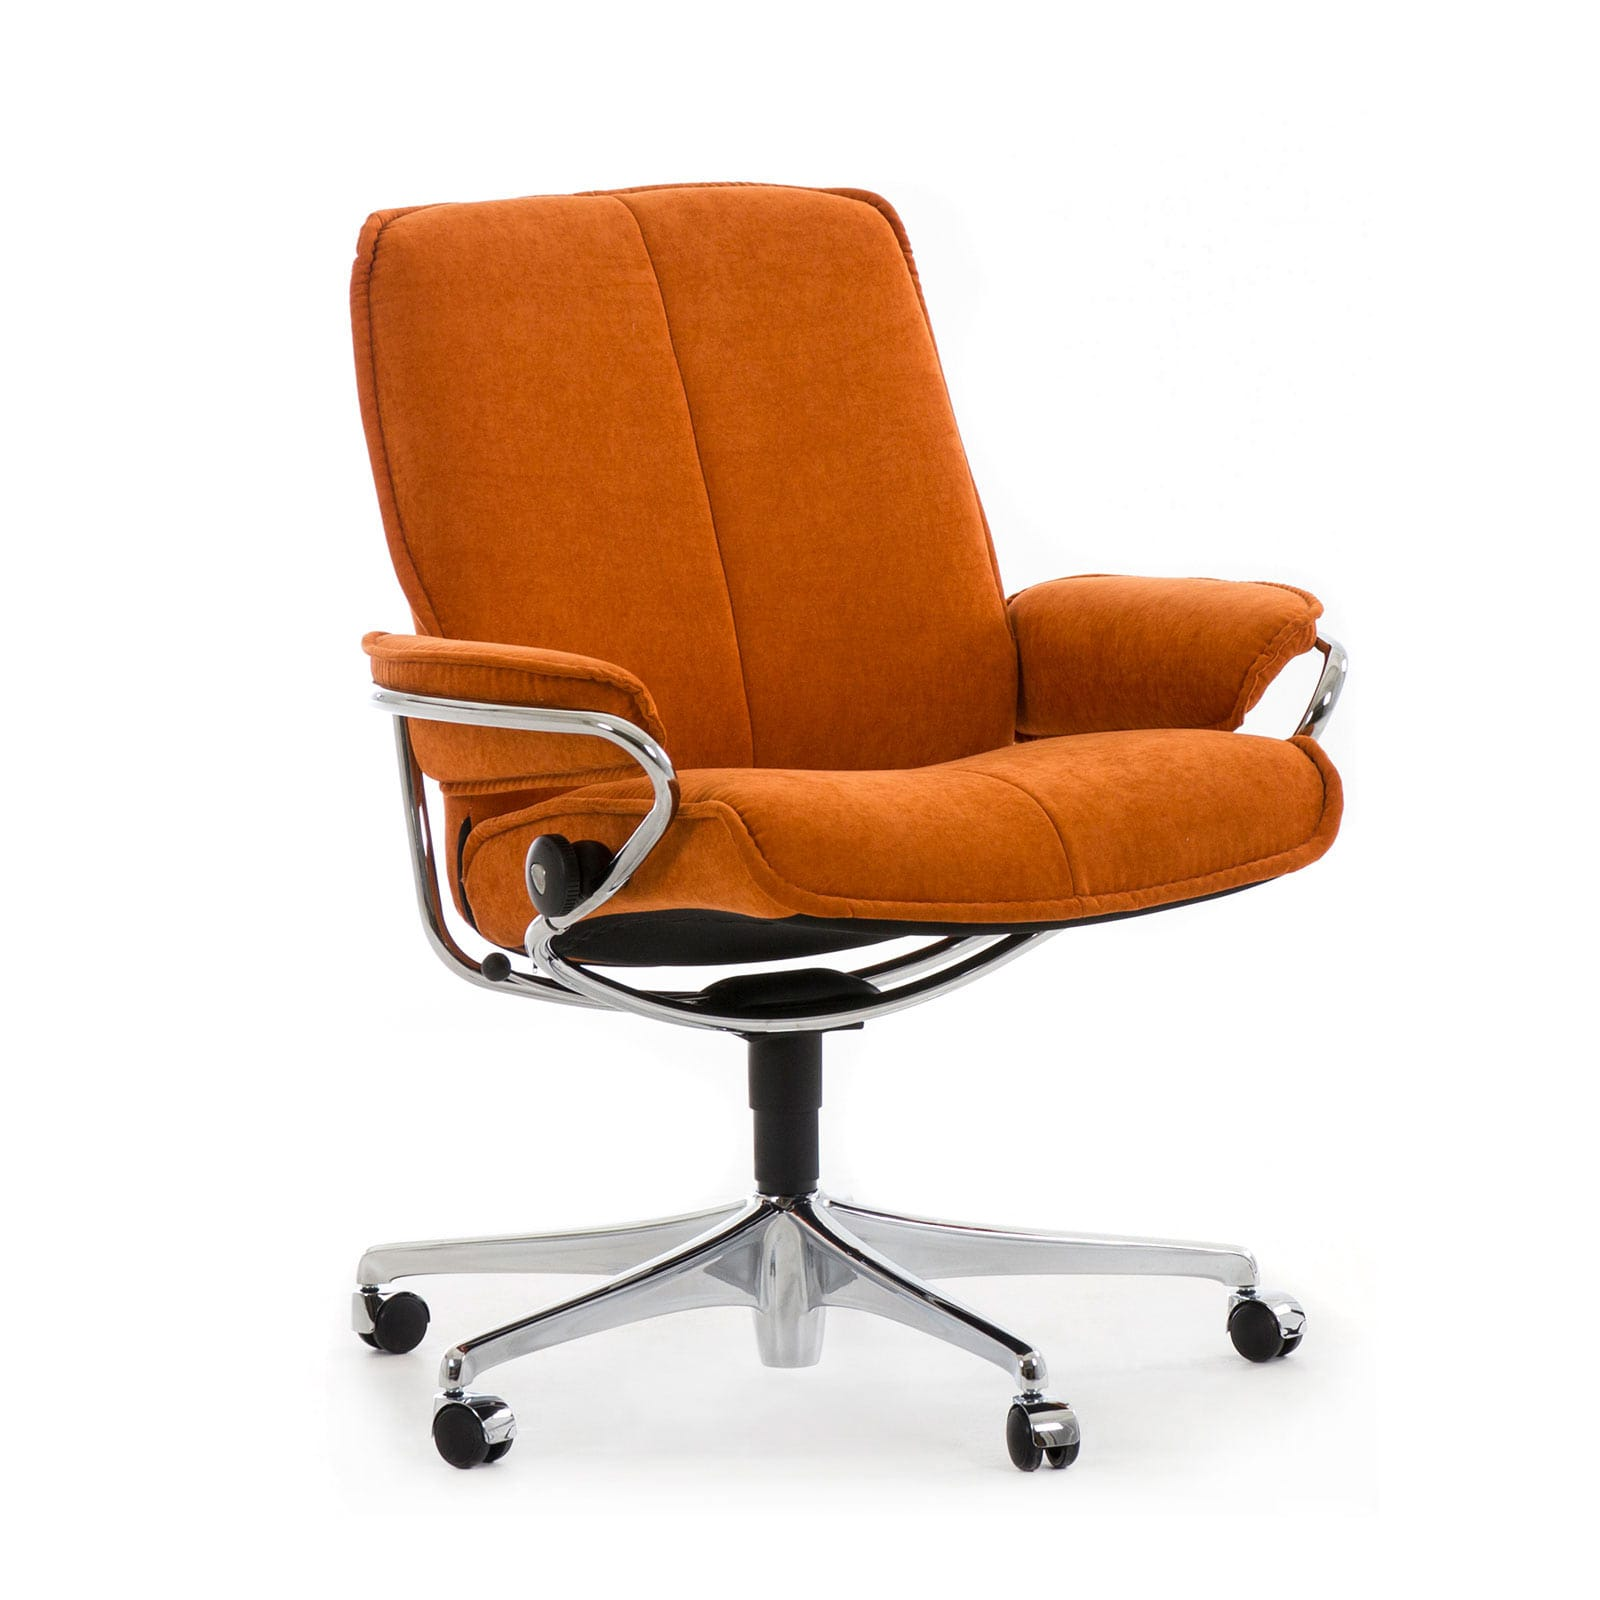 Relaxsessel Mit Rollen Stressless Sessel City Home Office Low Back Orange